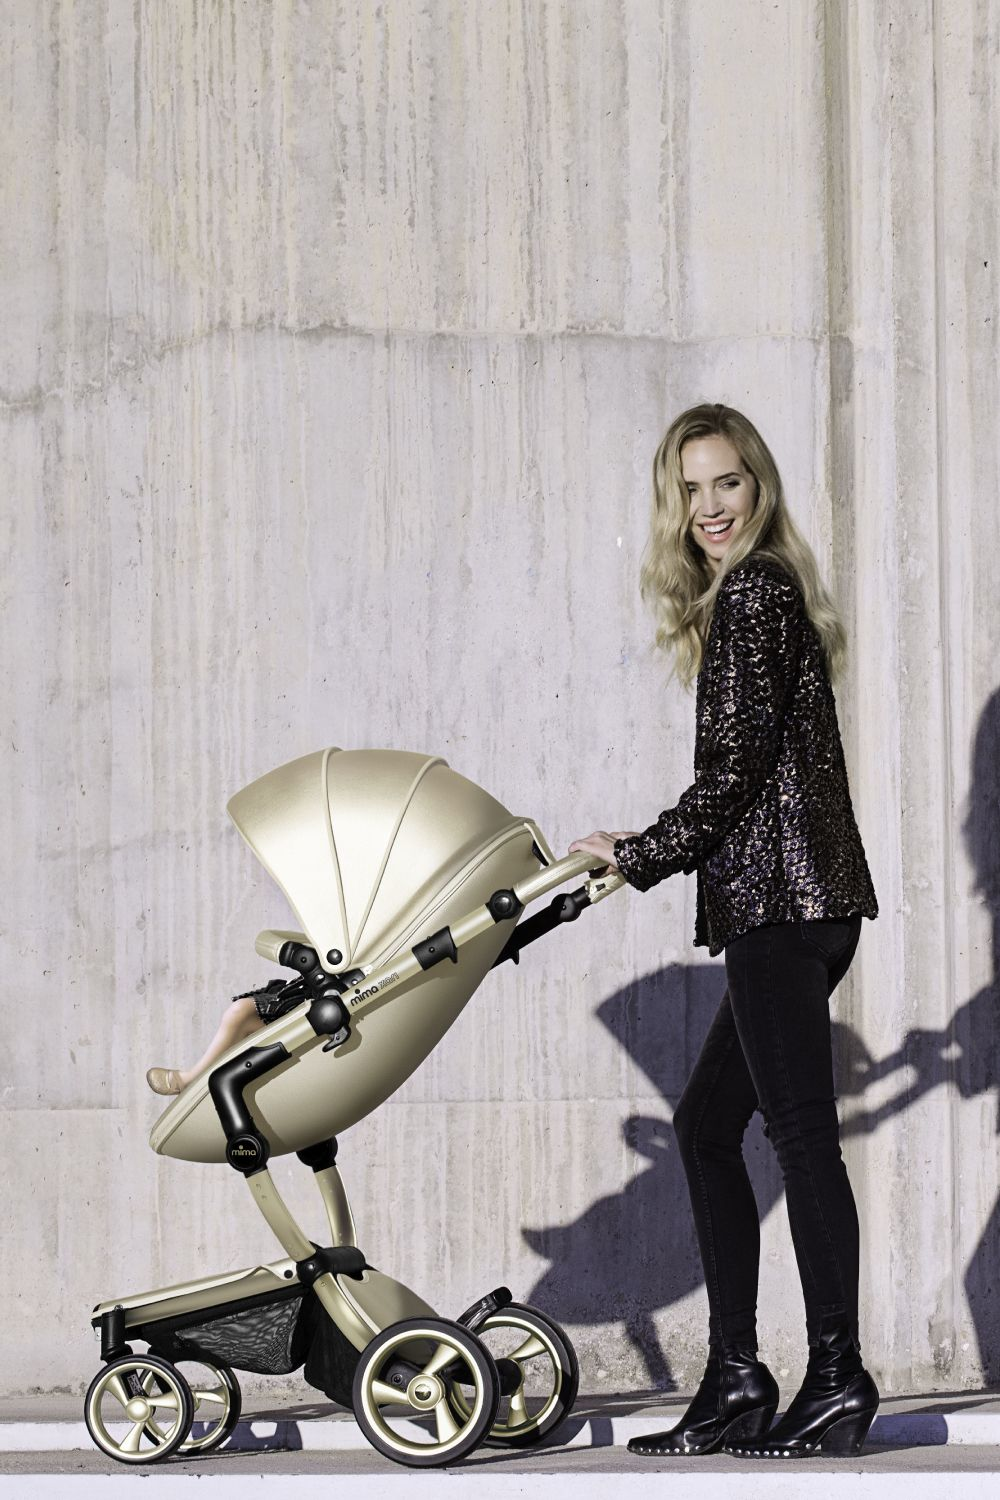 Mima Xari OneBox Stroller with Champagne Gold Chassis